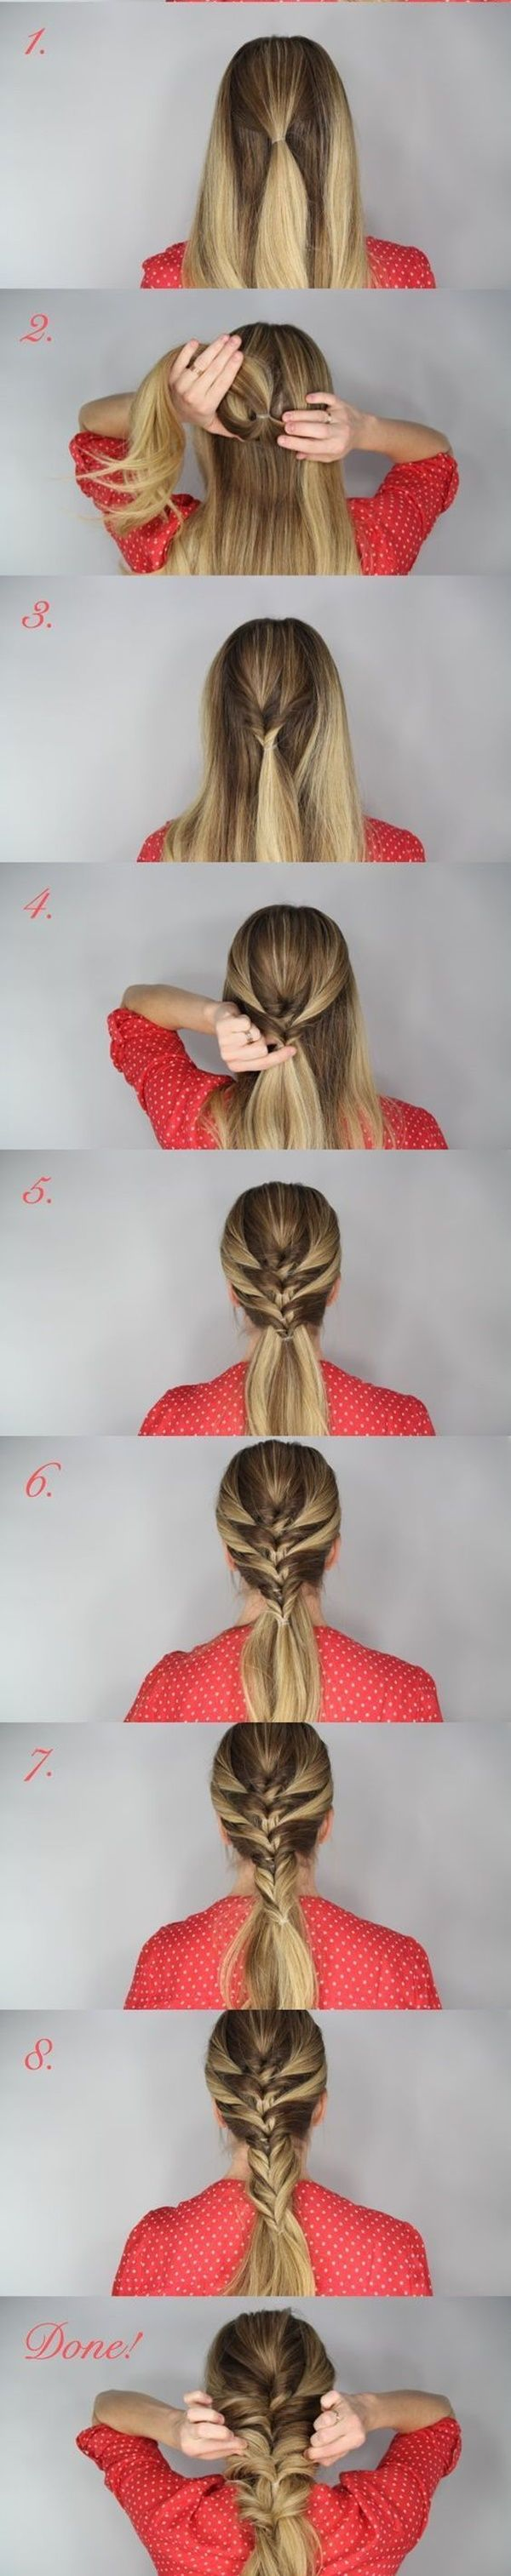 easy step by step hairstyles for girls hair style hair dos and